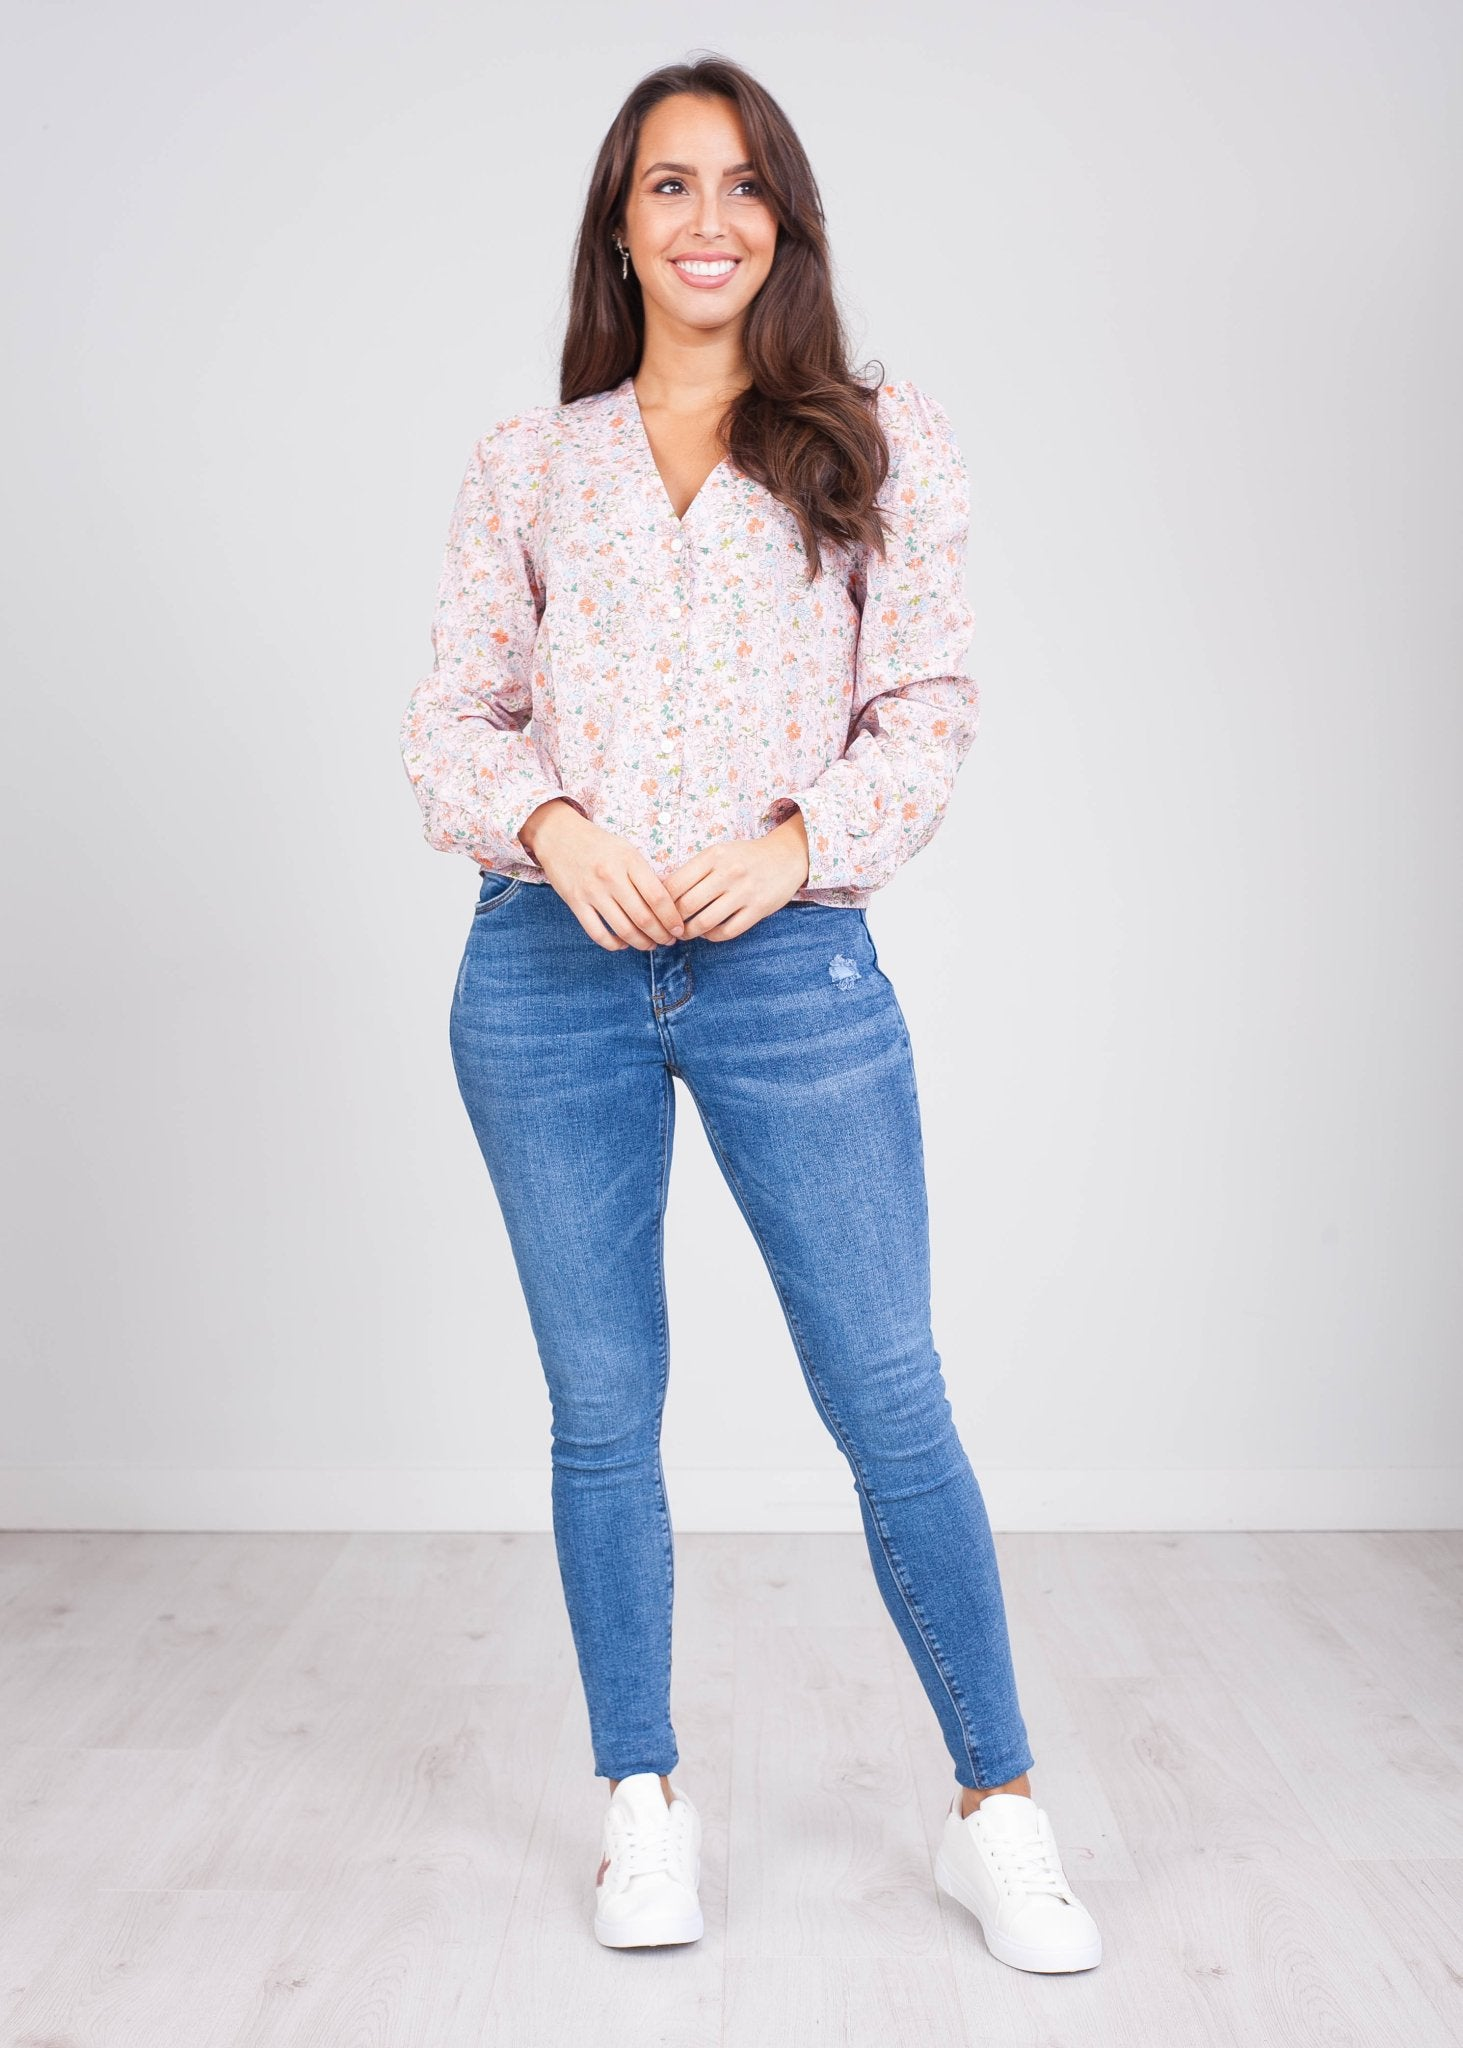 Fifi Pink Button up Blouse - The Walk in Wardrobe